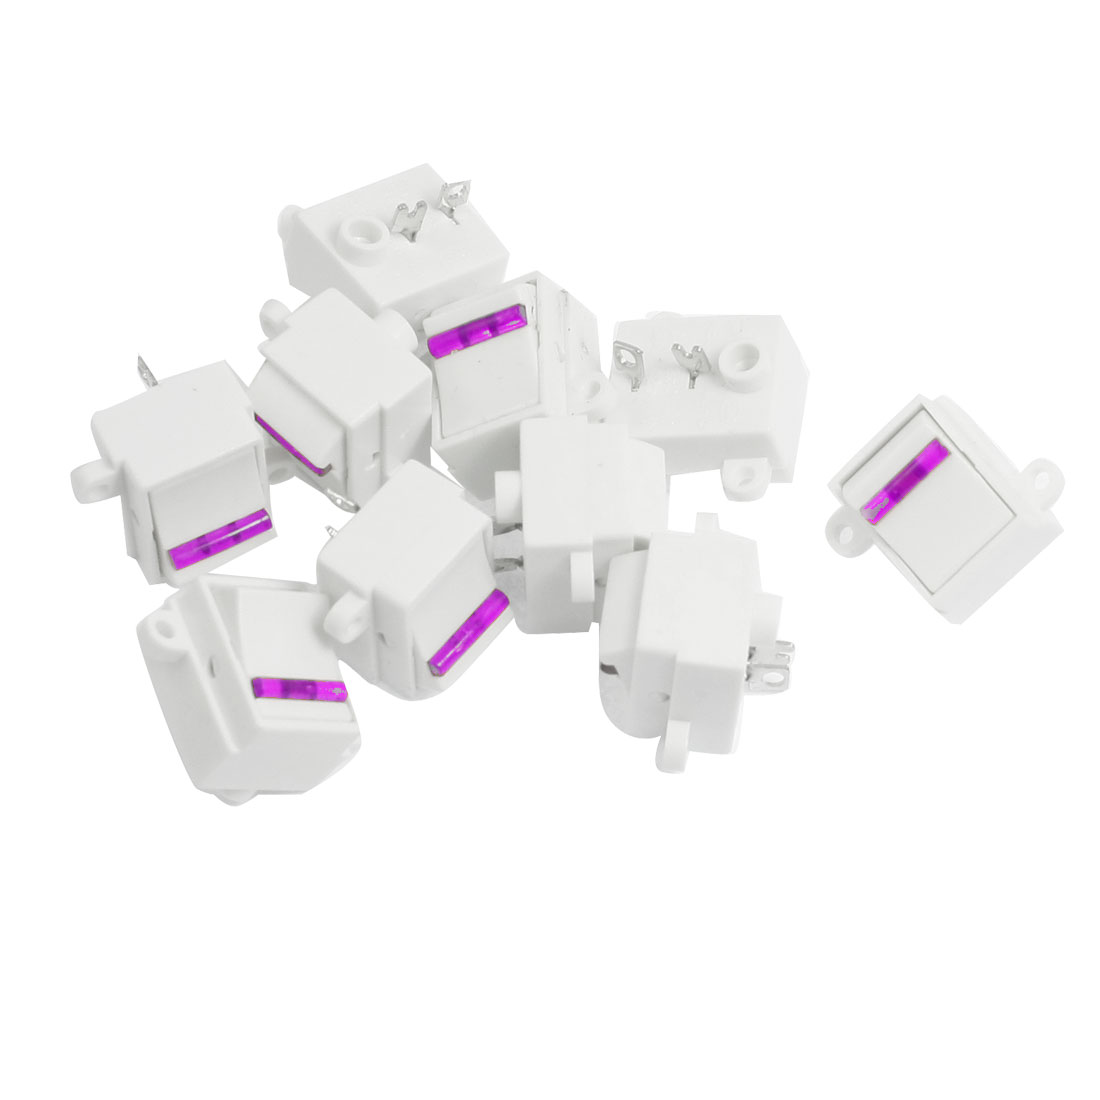 10 Pcs Purple White 125V/13A 250V/10A SPST ON OFF Rocker Switches